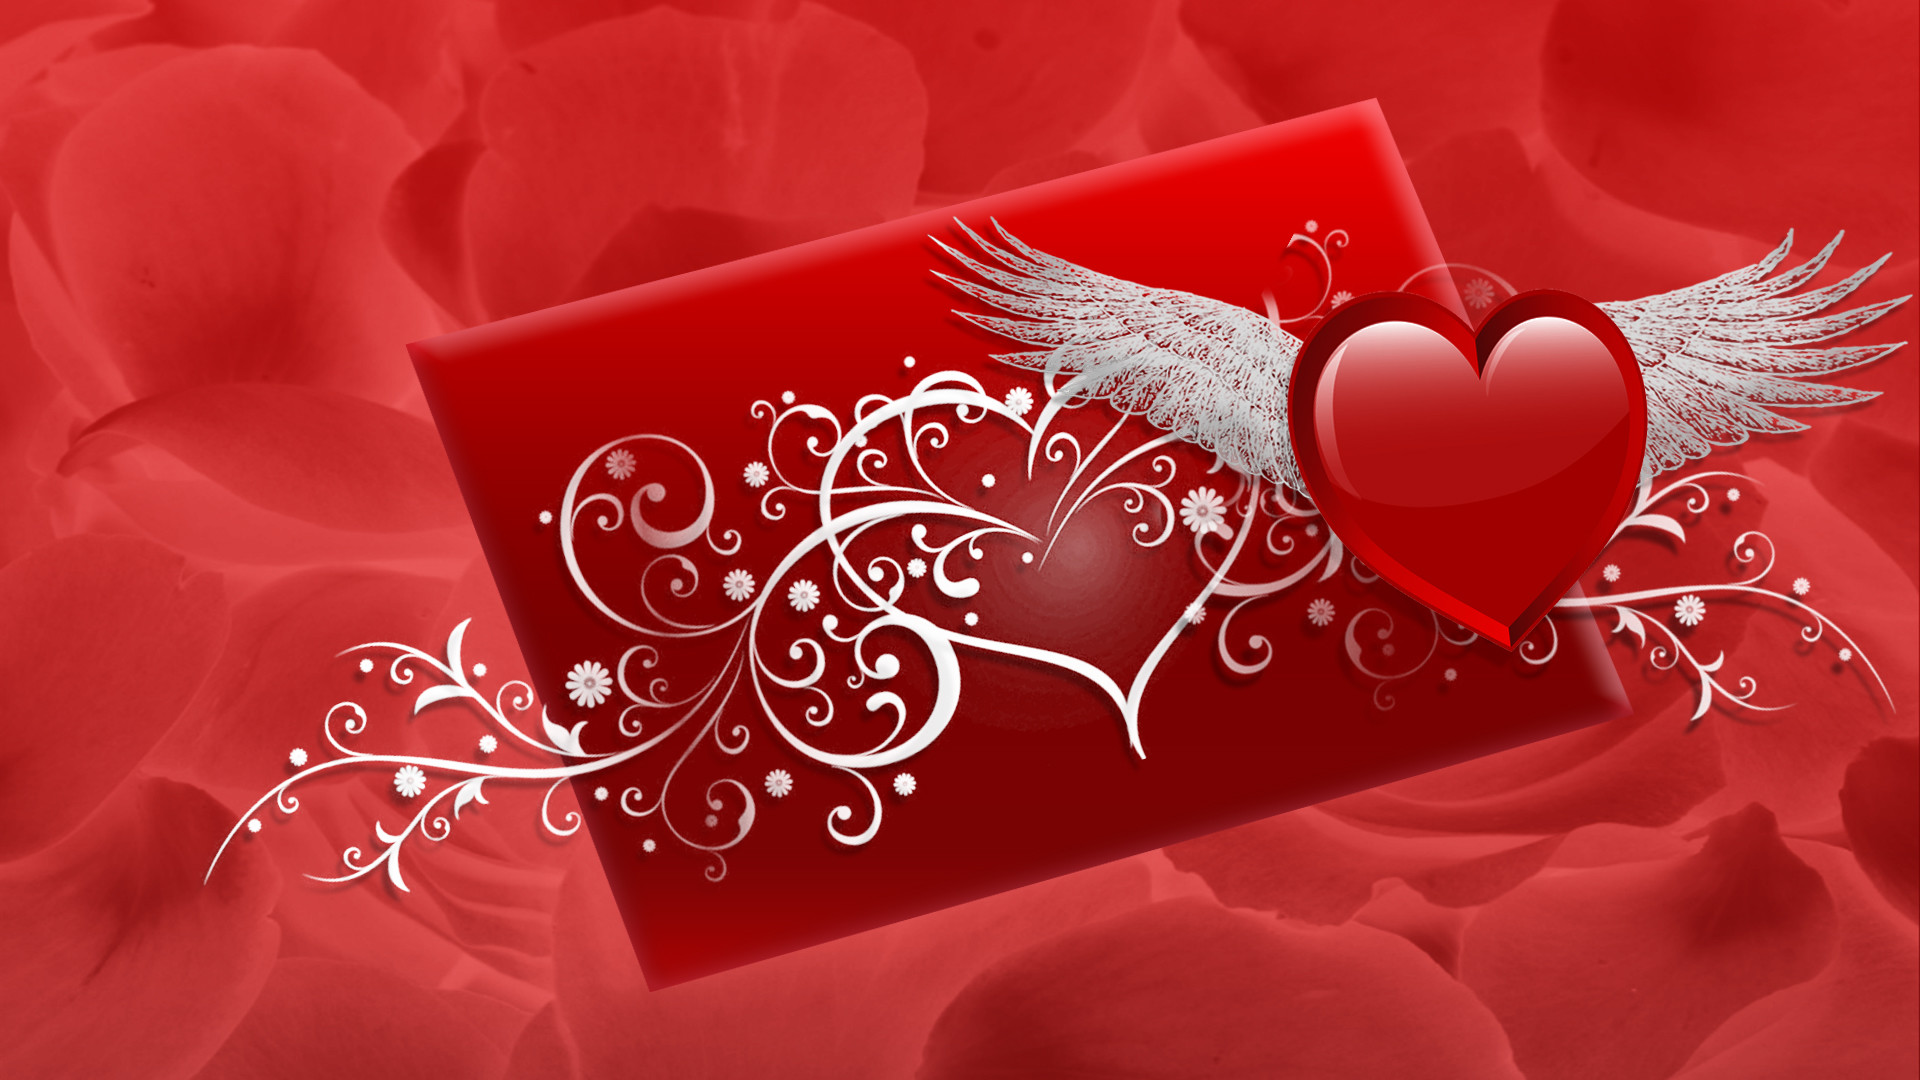 1920x1080 Valentine Screensaver Wallpaper   342896